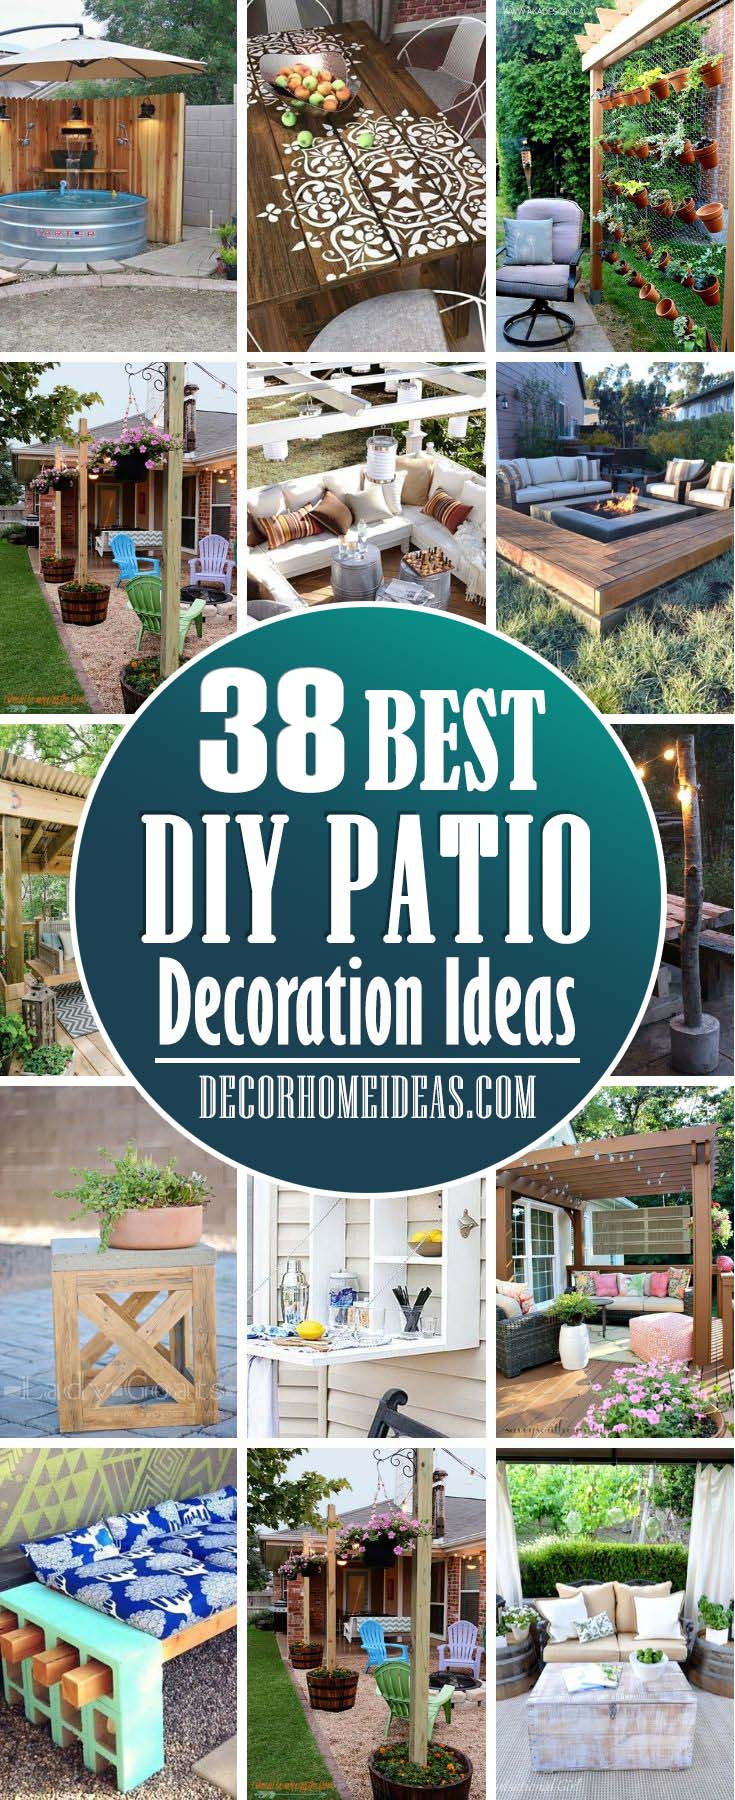 Best DIY Patio Decorations Ideas. Decorate your patio with style, add fire pit, pergola, cushions or pillows and make it the perfect place to relax all year long. #diy #patio #decorations #decorhomeideas